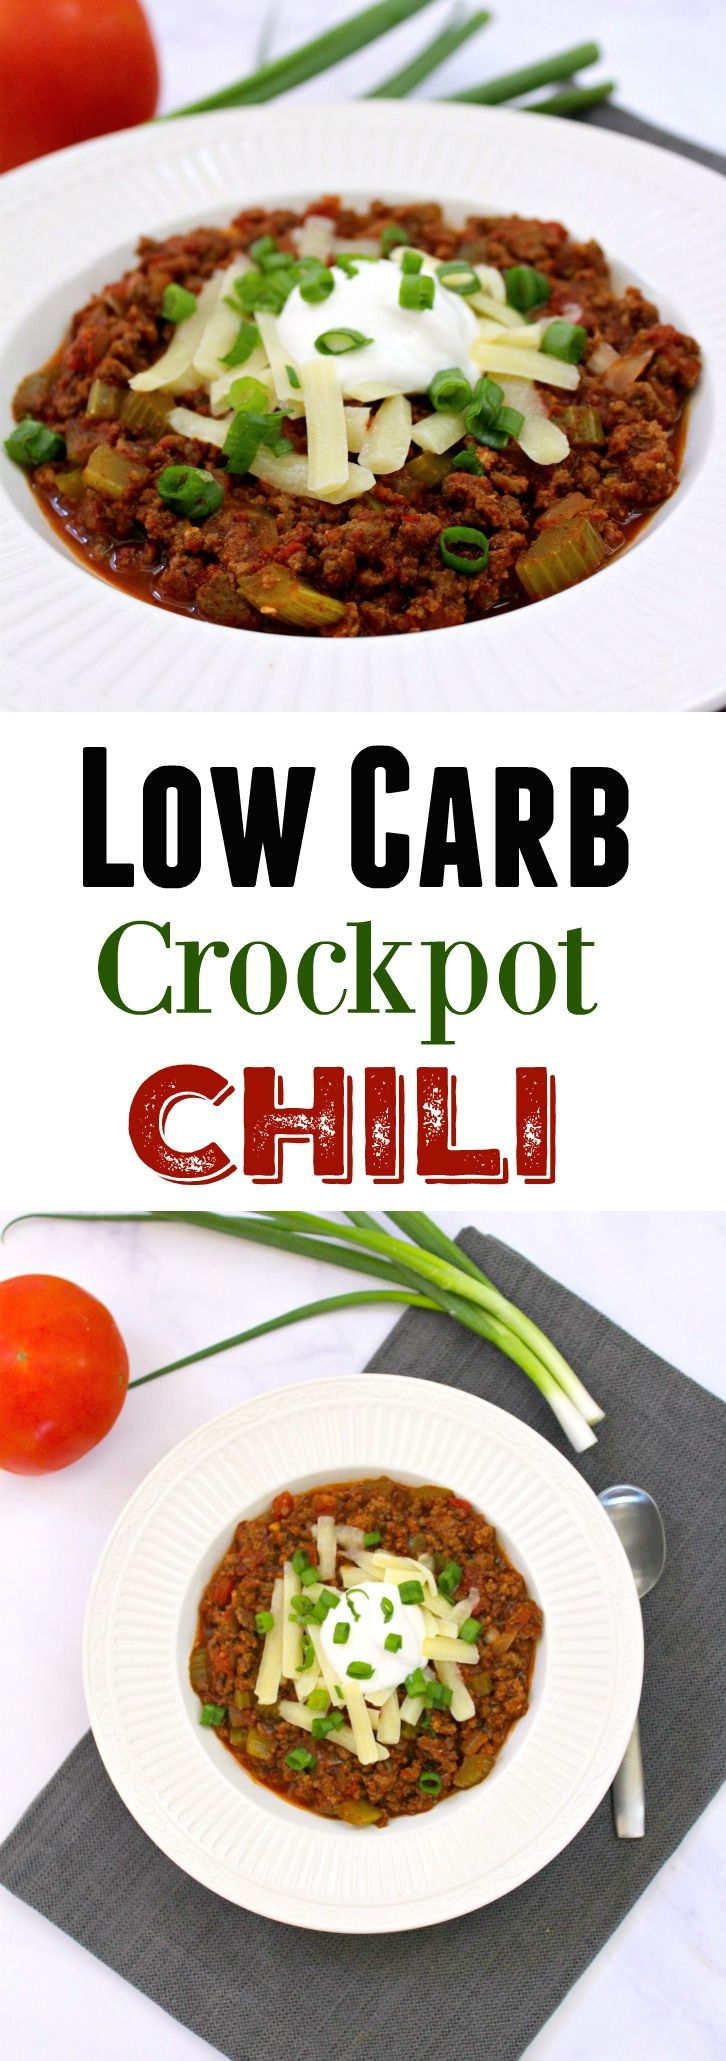 A Low Carb Gluten Free Crockpot Chili recipe with amazing seasonings and flavors, without…